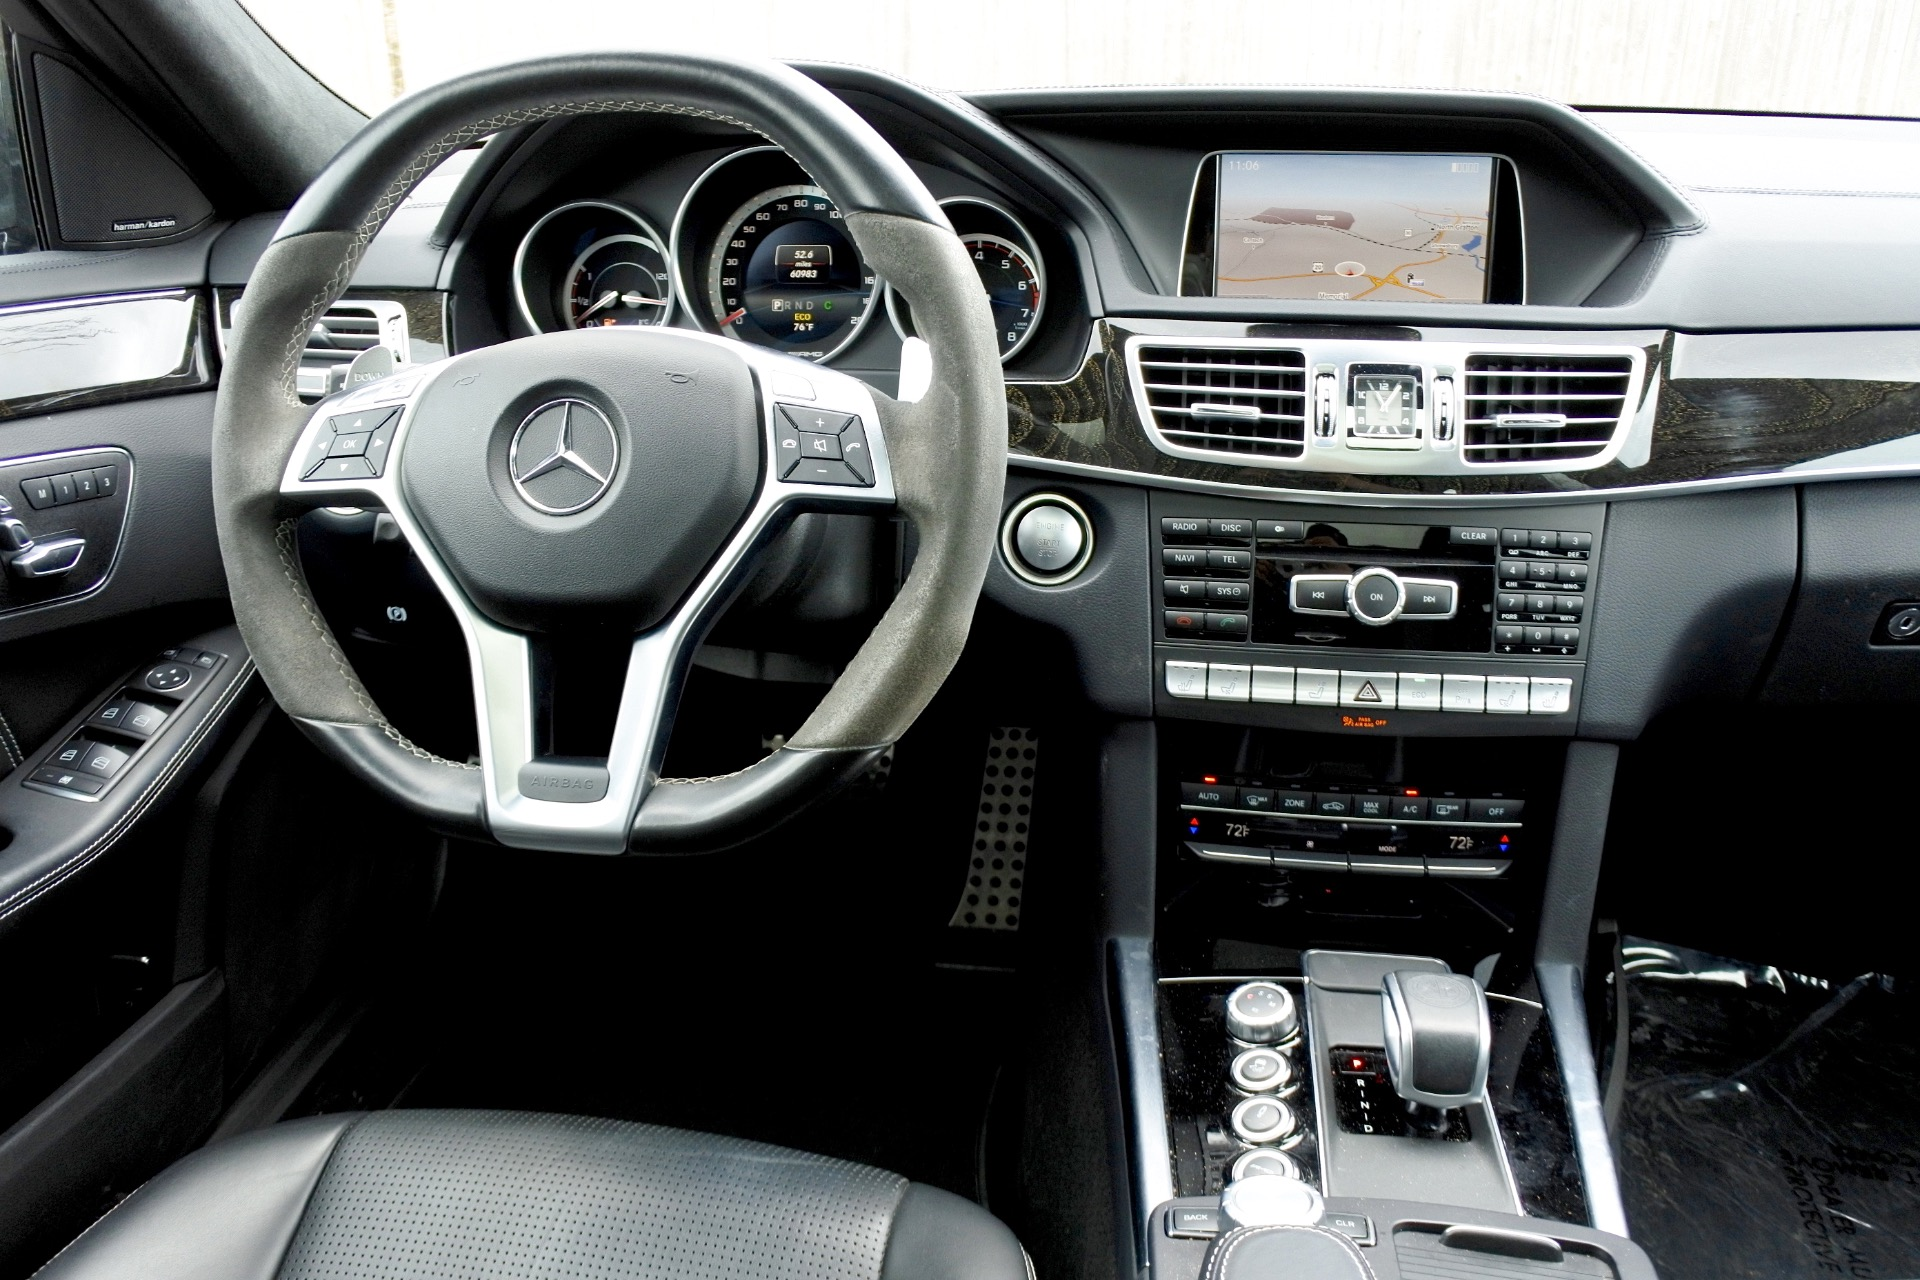 Used 2014 Mercedes-Benz E-class E63 S AMG Wagon 4MATIC Used 2014 Mercedes-Benz E-class E63 S AMG Wagon 4MATIC for sale  at Metro West Motorcars LLC in Shrewsbury MA 8